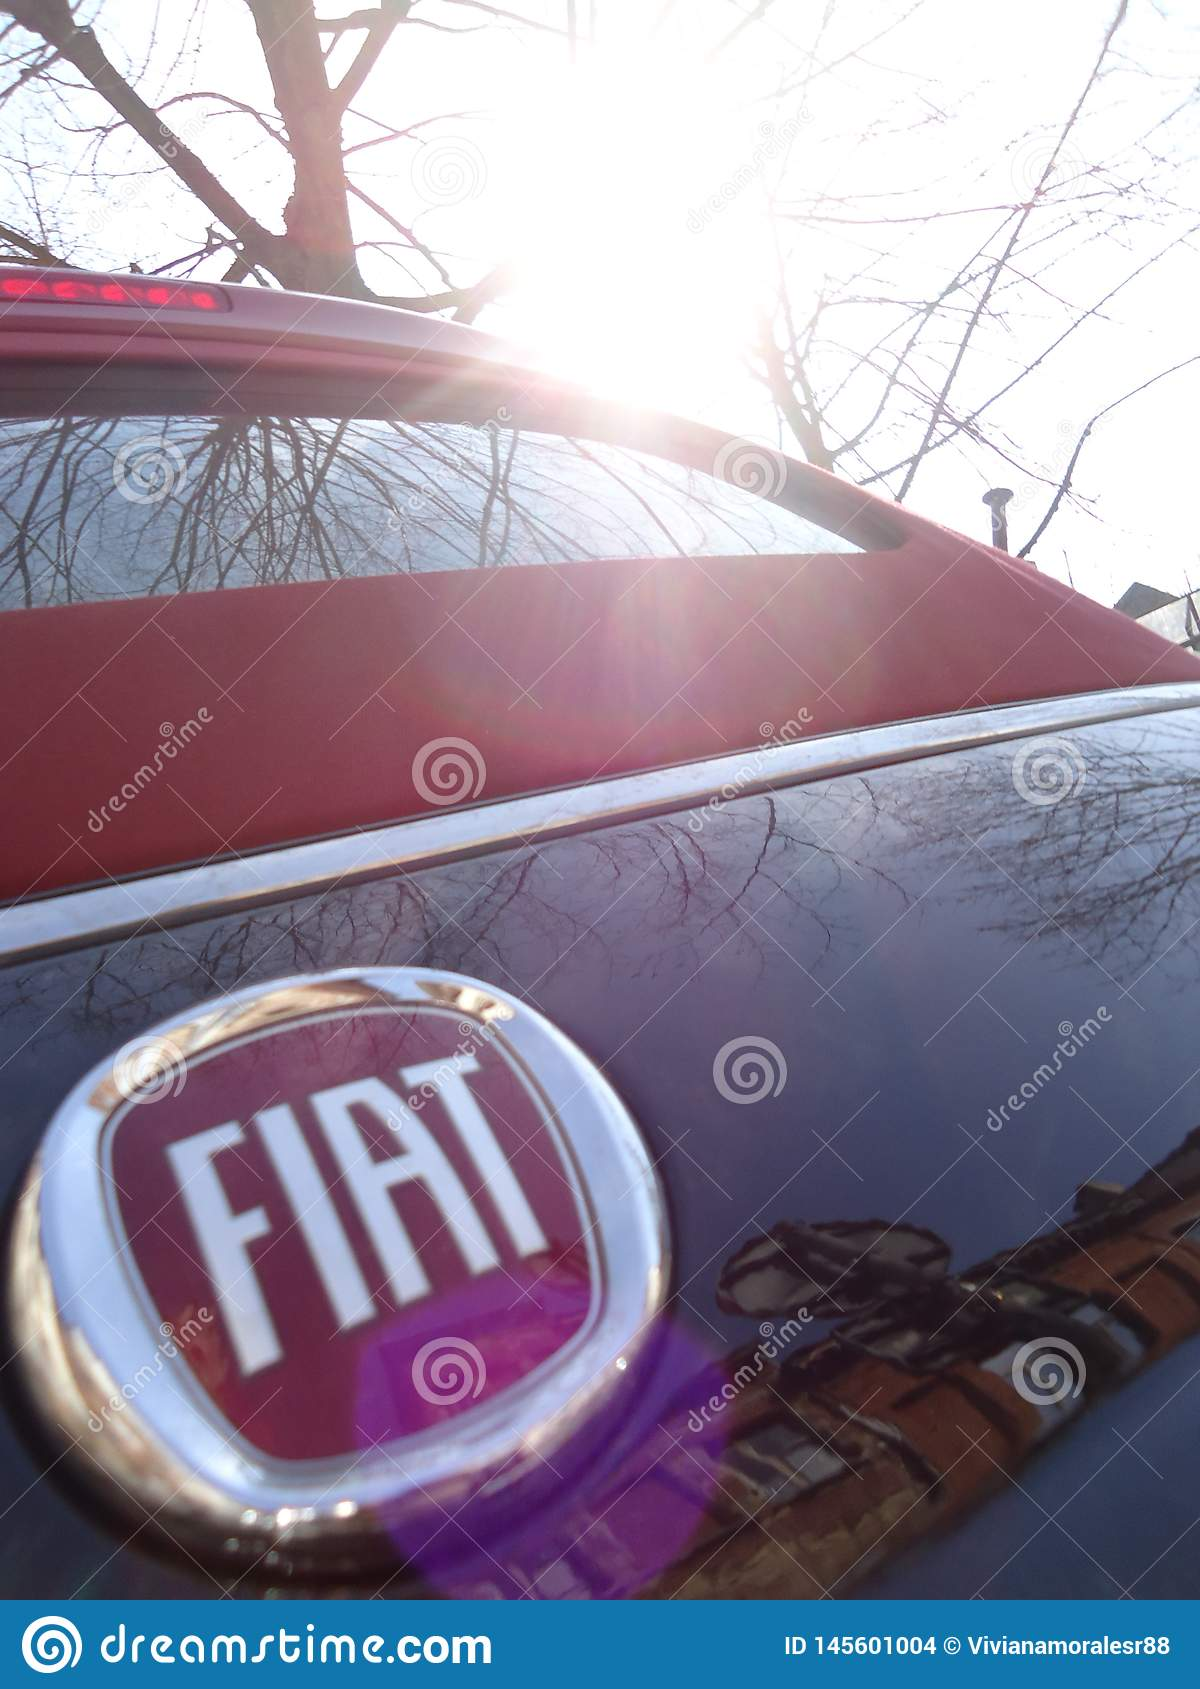 Detail from Fiat 500 black and red